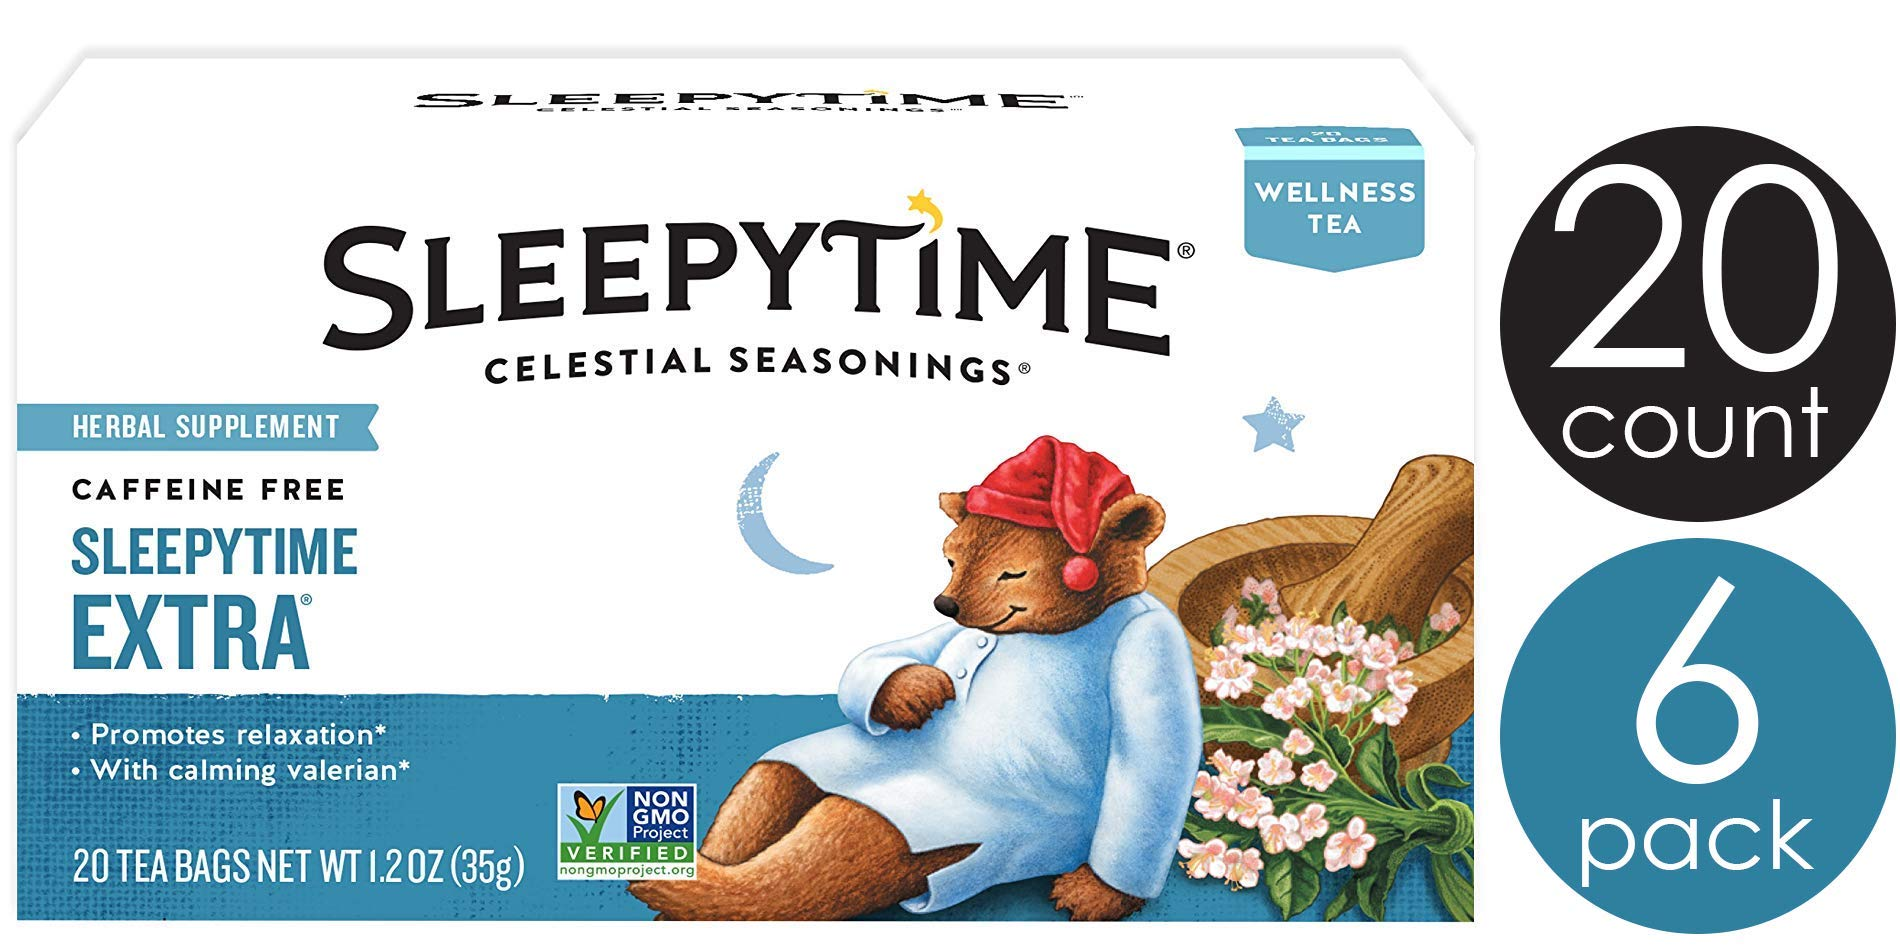 Celestial Seasonings Wellness Tea, Sleepytime Extra, 20 Count Box (Pack of 6) by Celestial Seasonings